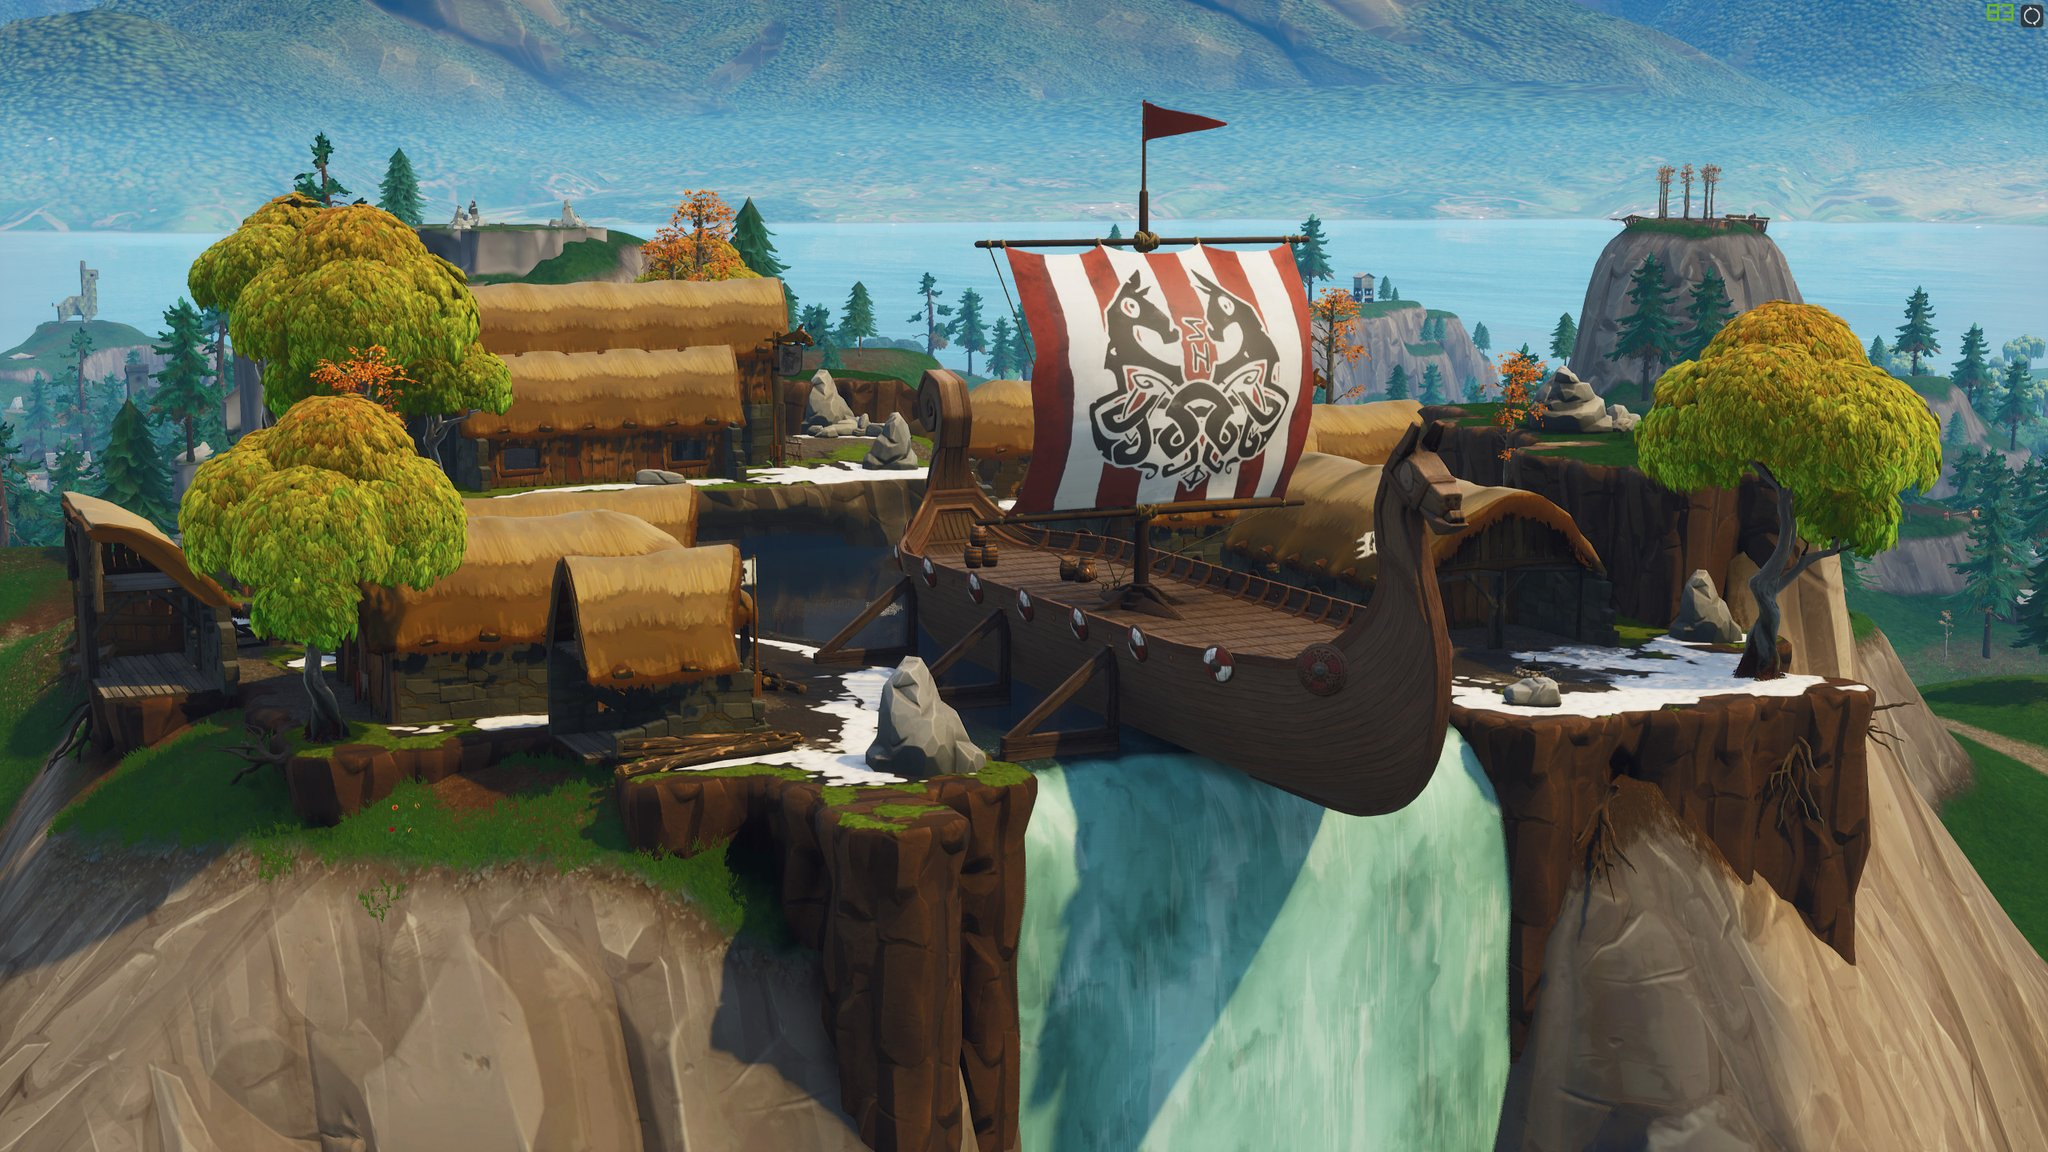 an enormous viking ship s also planted on the edge of the waterfall which indicates they ve probably been pulled into the world unexpectedly while rowing - fortnite background tilted towers